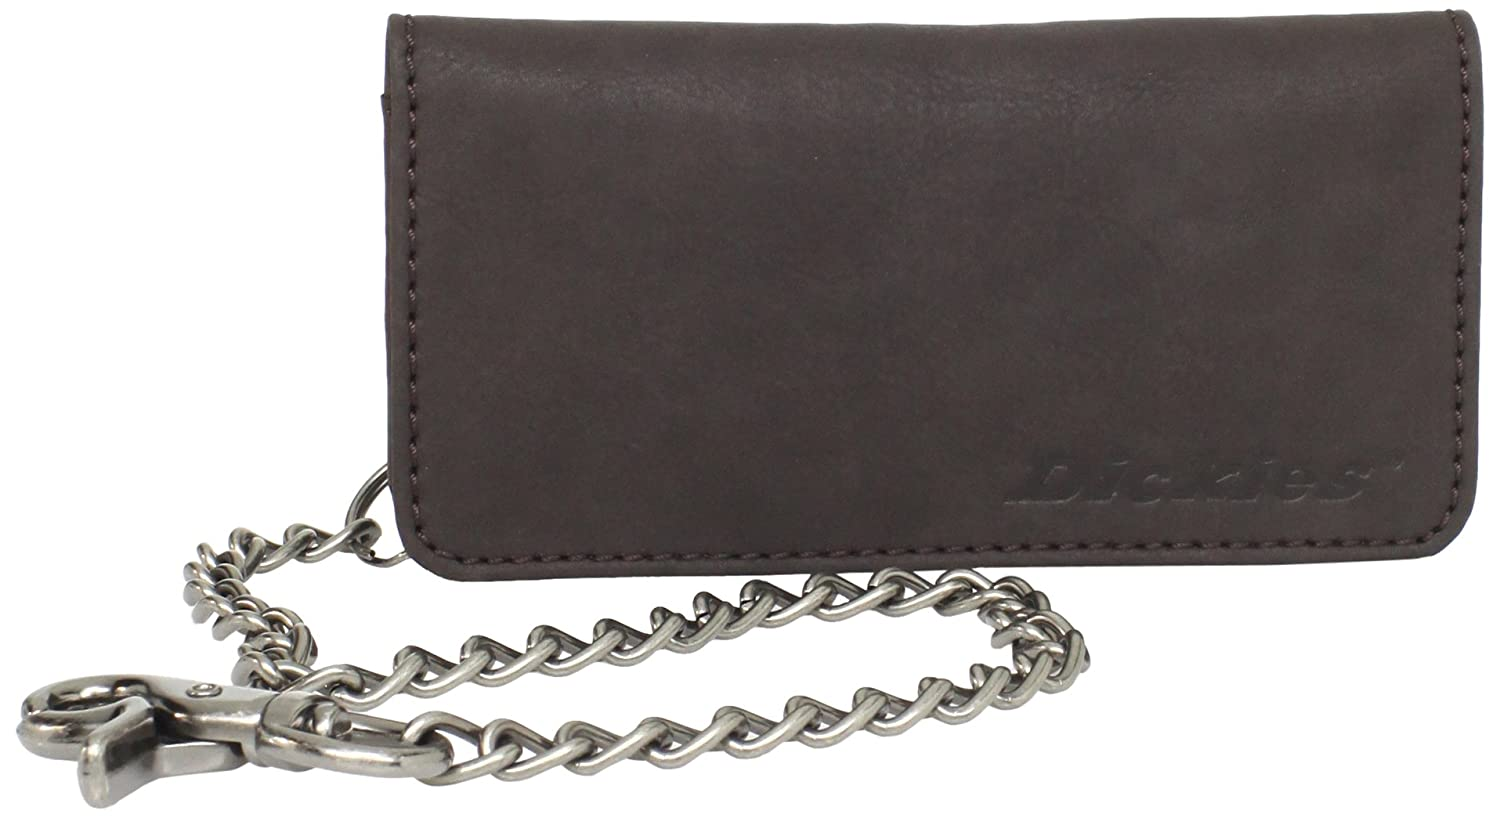 Dickies Men's Trucker Wallet With Chain Brown One Size Dickies Men' s Accessories 31DI3000